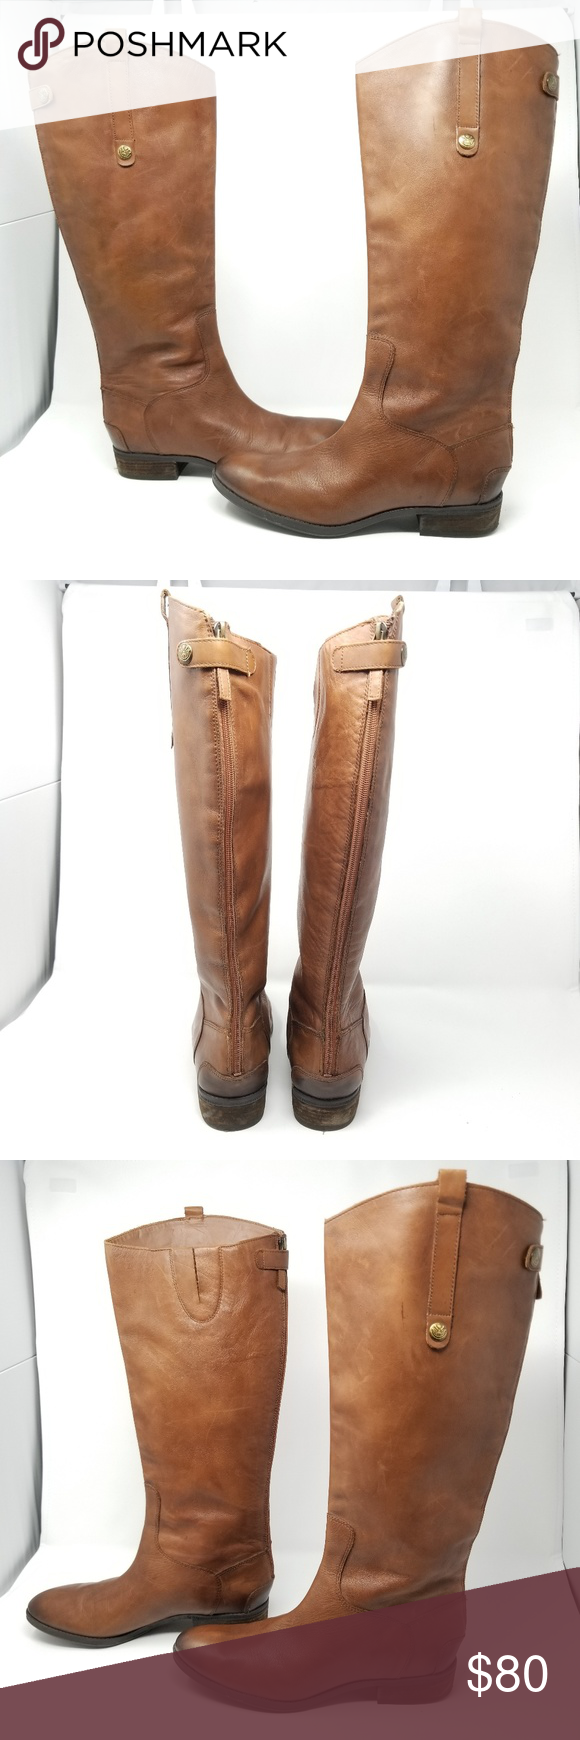 8266758e365 SAM EDELMAN Tall Brown Riding Boots 11M Leather knee high boots. Whiskey  tan brown riding